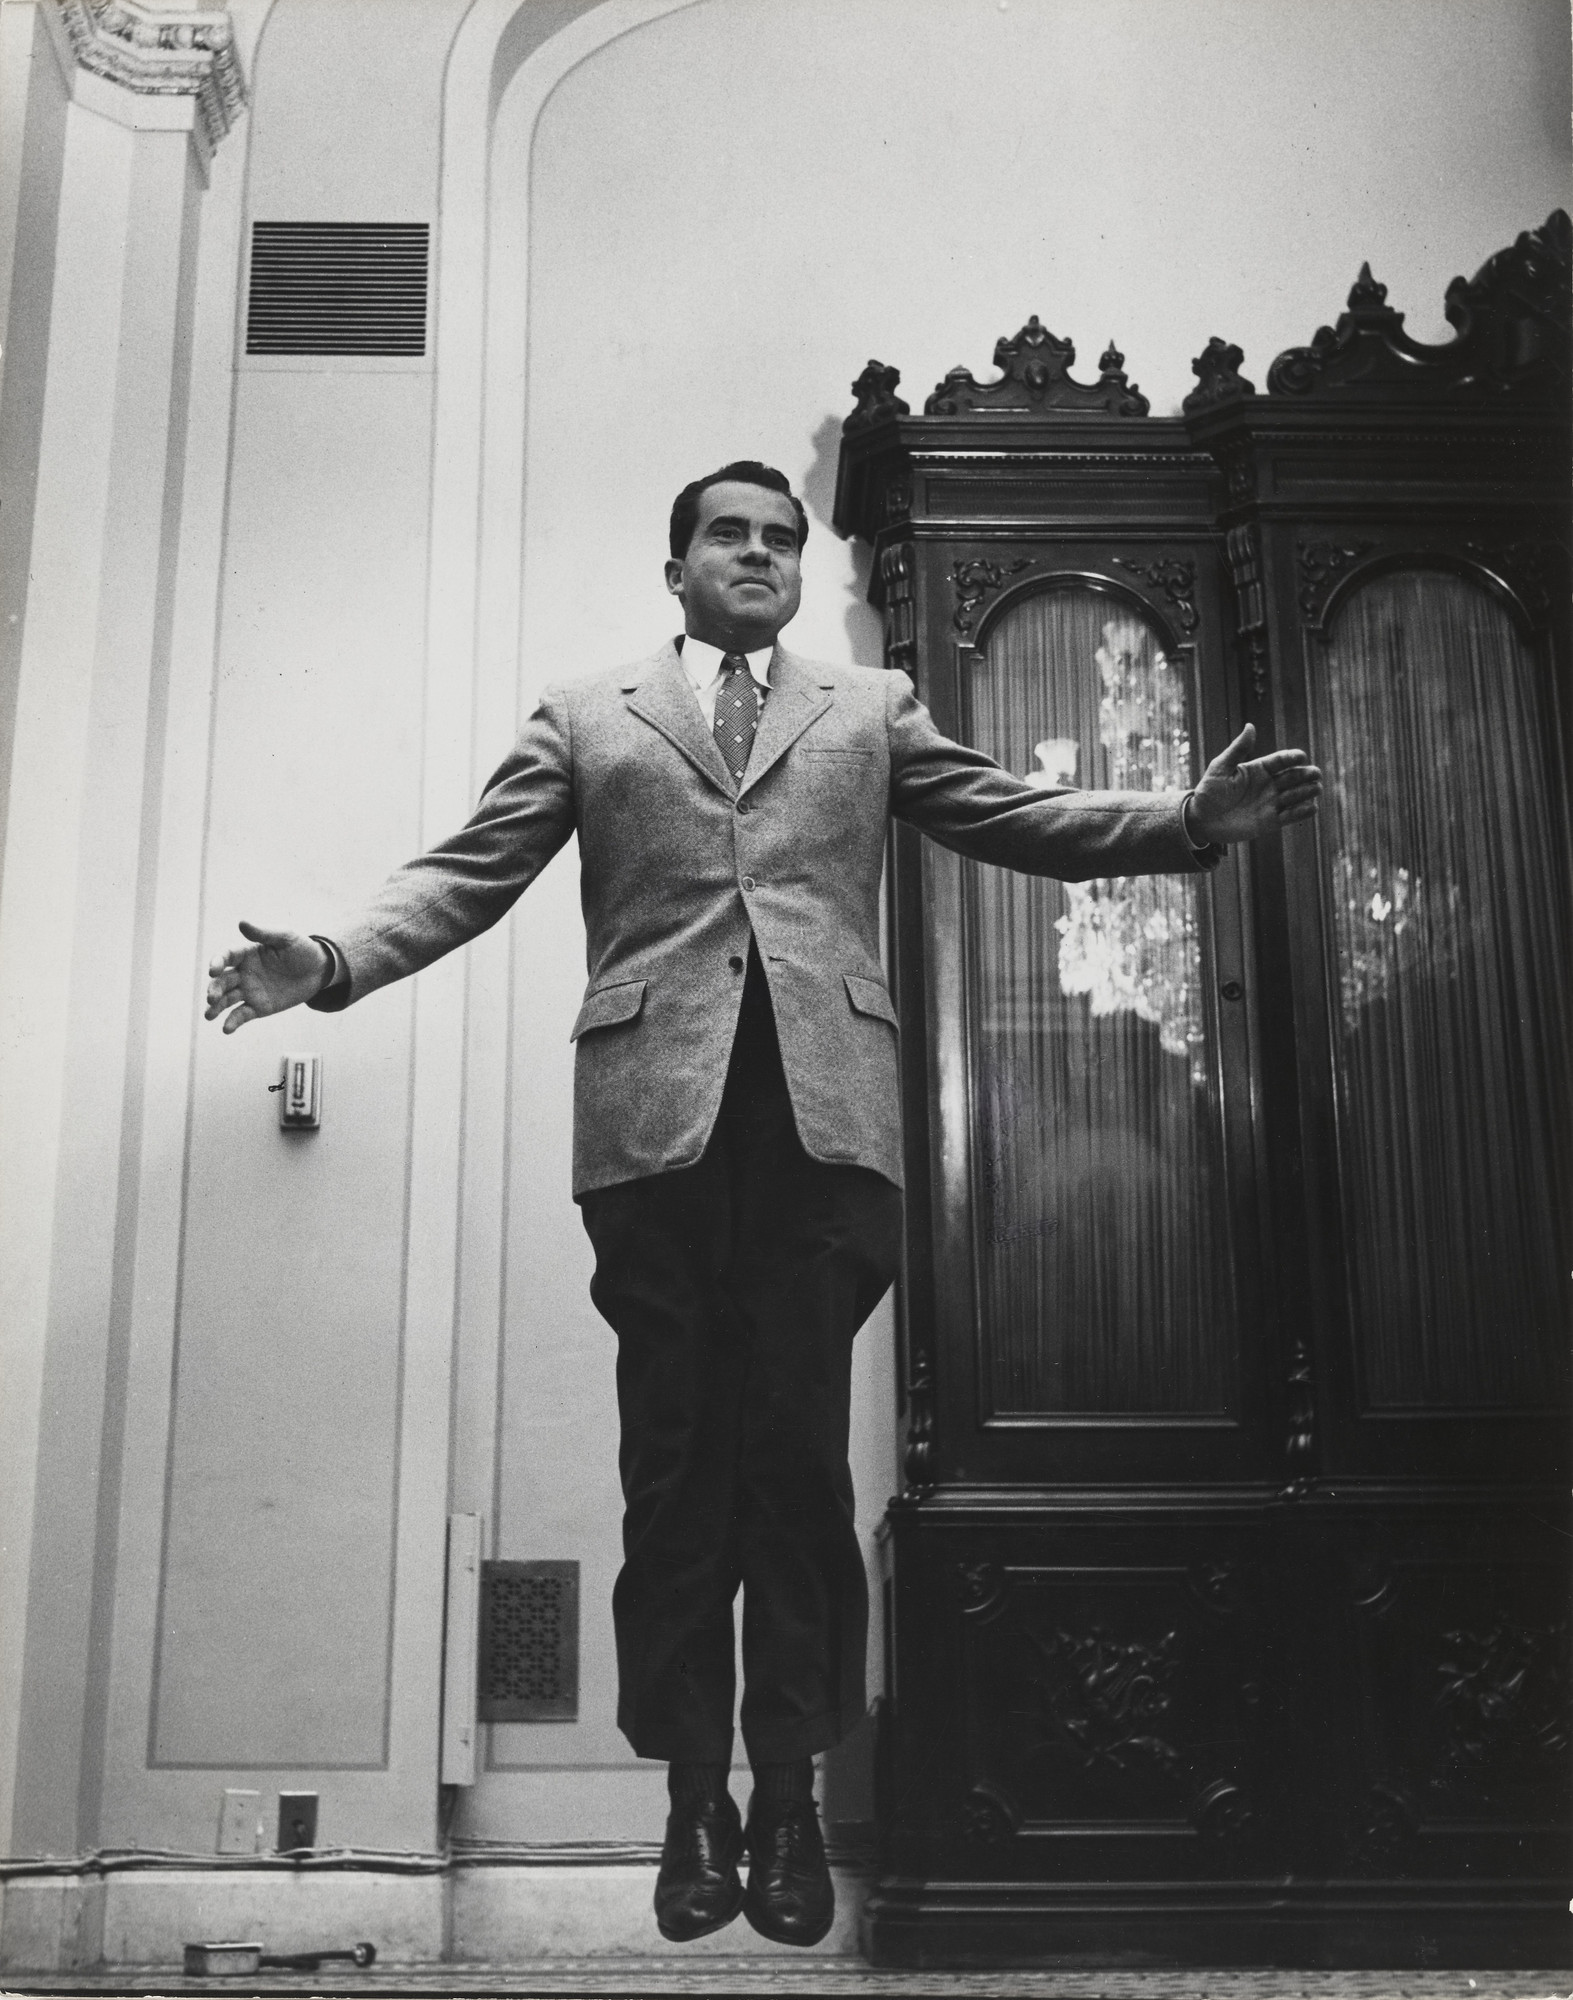 Philippe Halsman. Vice President Richard Nixon, White House. 1955